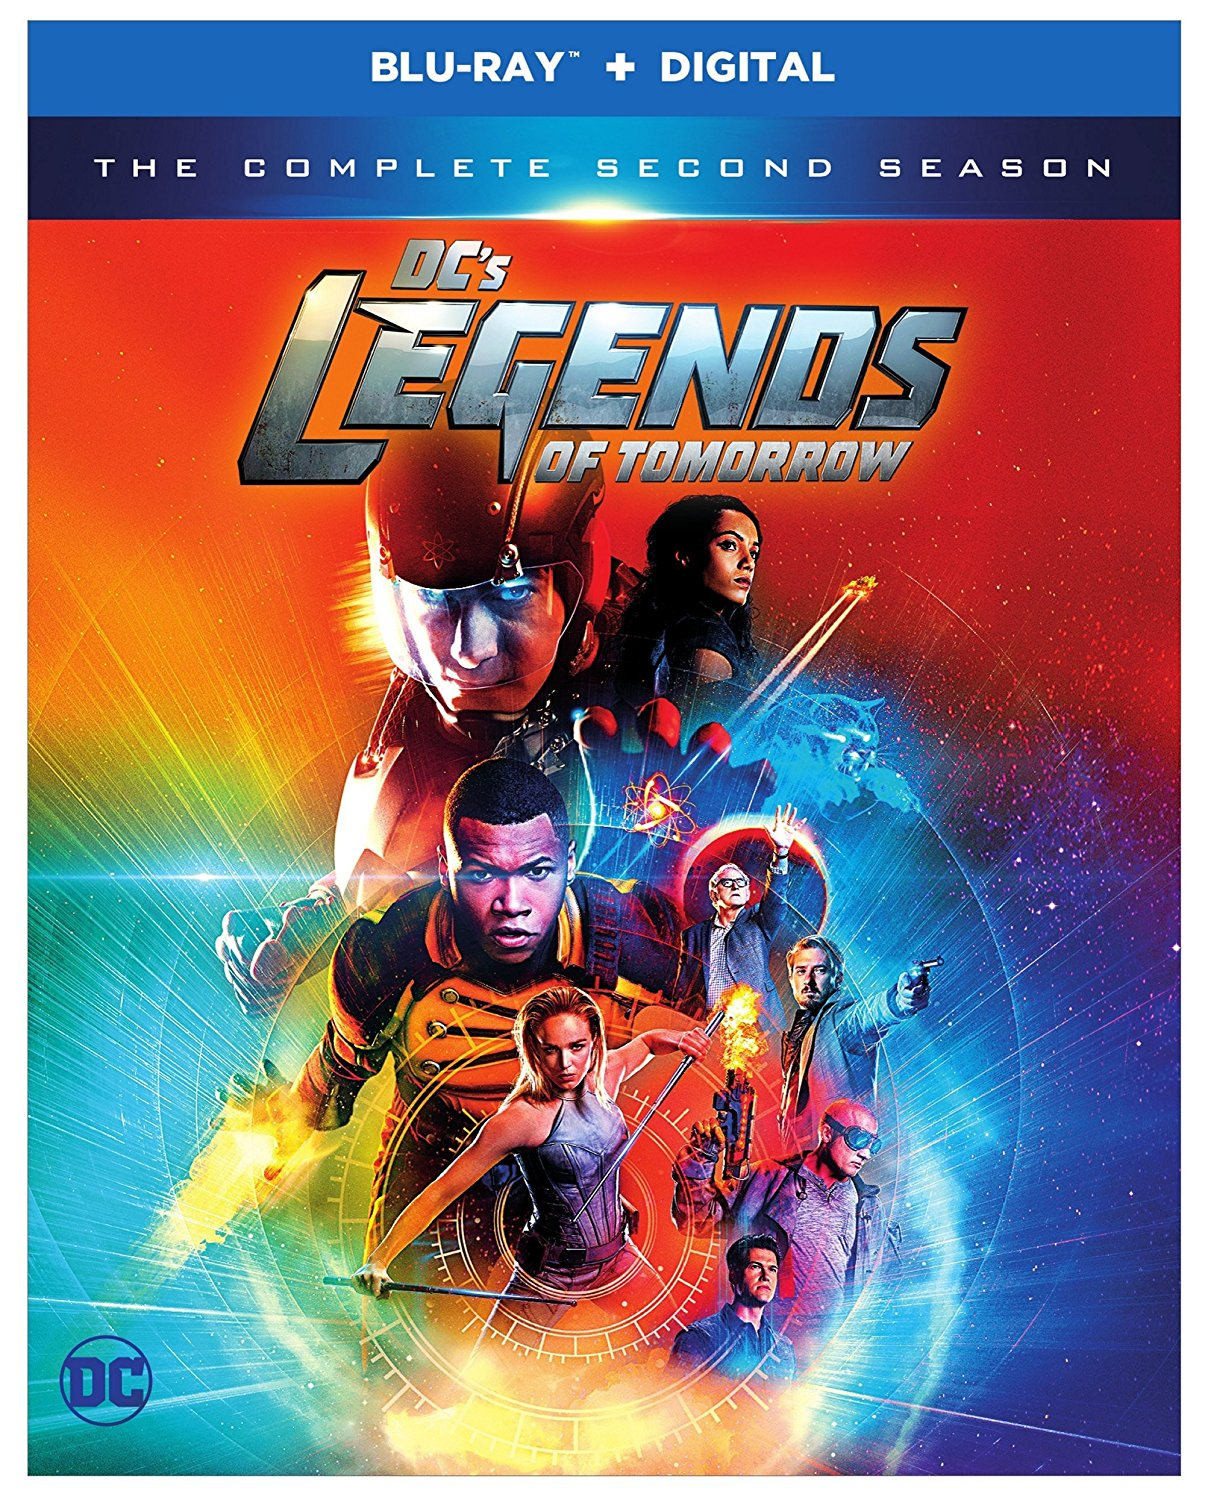 DC's Legends of Tomorrow [TV Series] - DC's Legends Of Tomorrow: The Complete Second Season